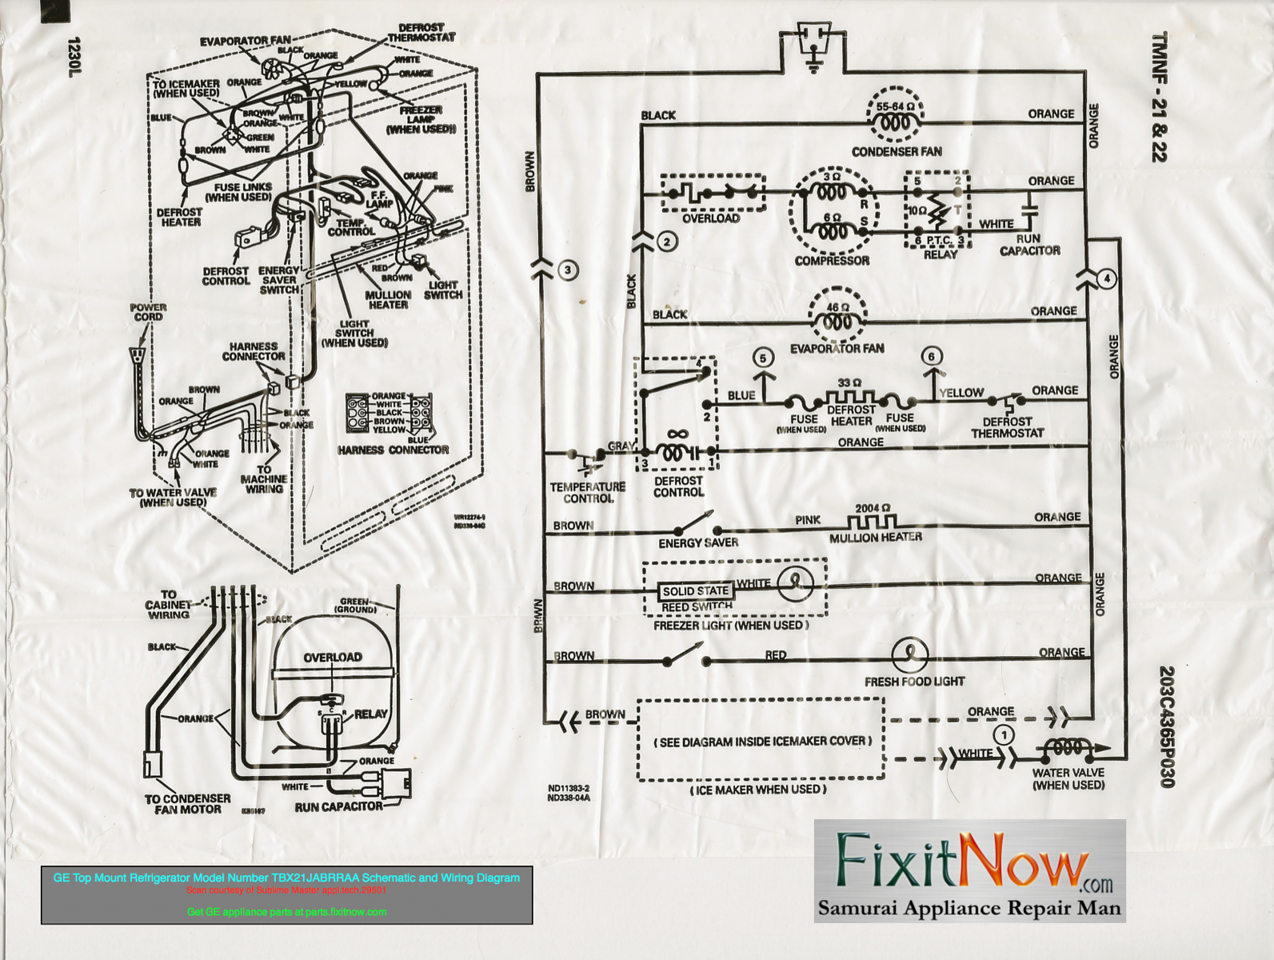 Frigidaire Refrigerator Thermostat Wiring Diagram Jacuzzi Bathtub Free Download Schematic Ge Third Levelwiring Diagrams And Schematics Appliantology